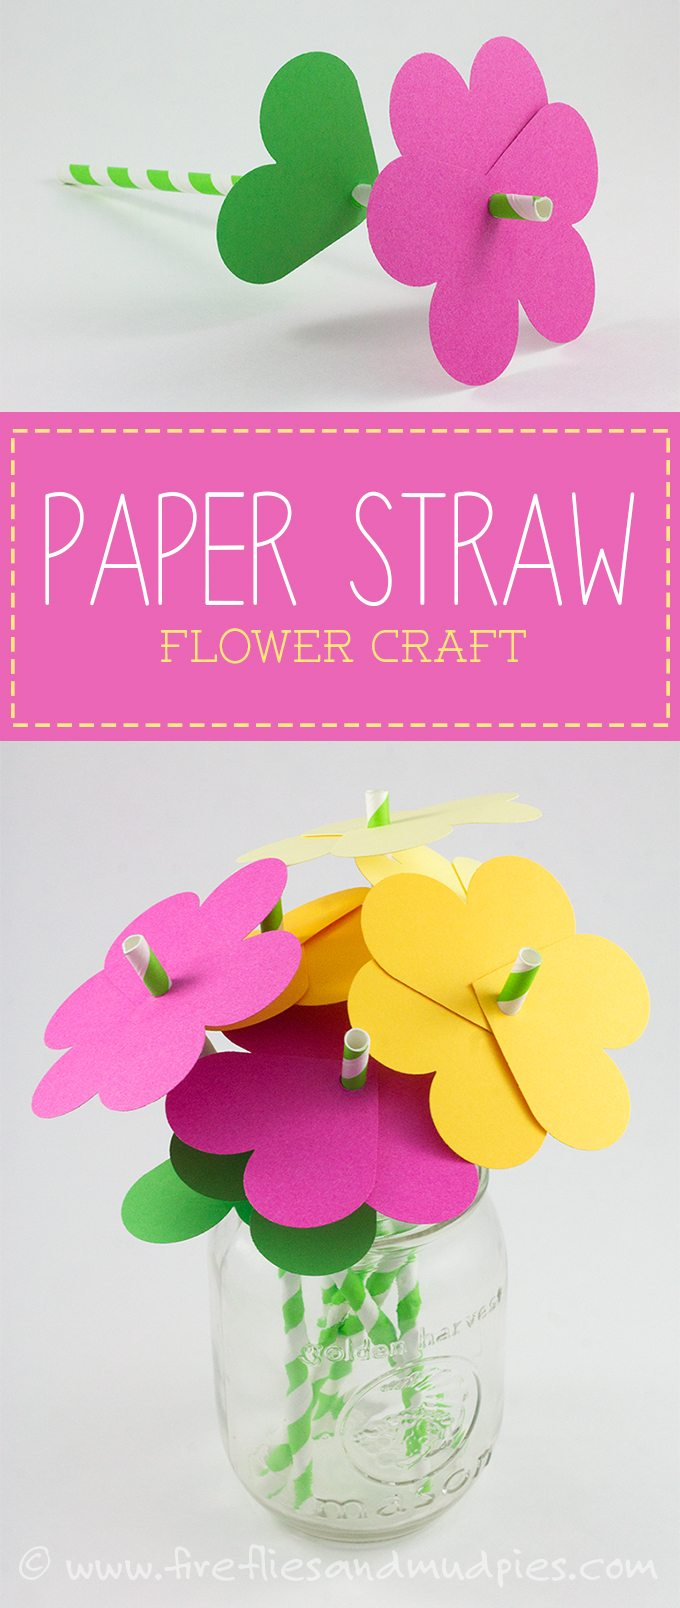 Paper Straw Flowers.